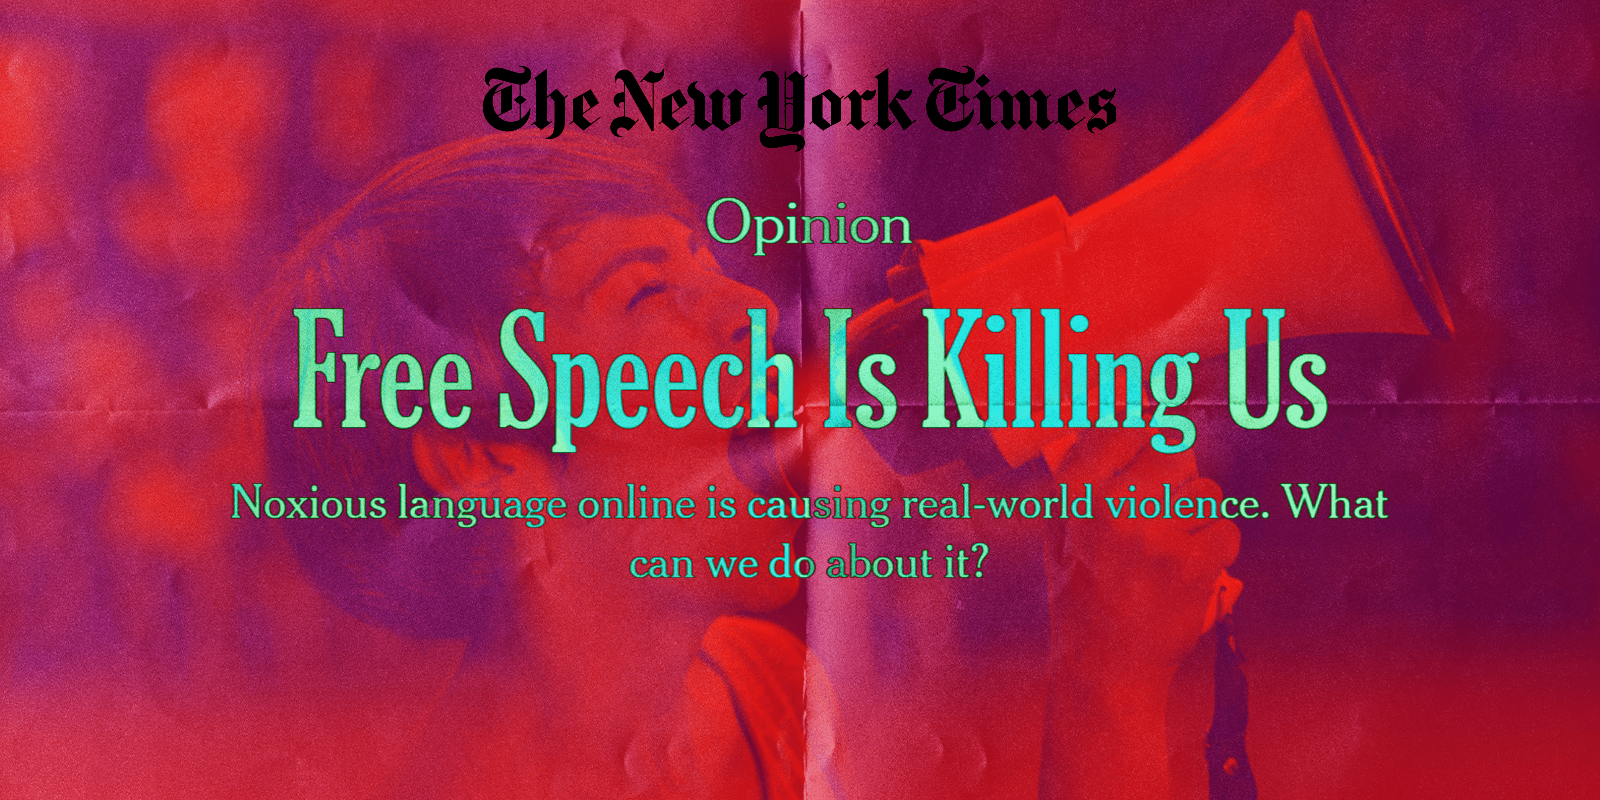 The New York Times is free to rail against free speech, but it is unwise. Free speech is a sacred right that, once taken away, is impossible to get back